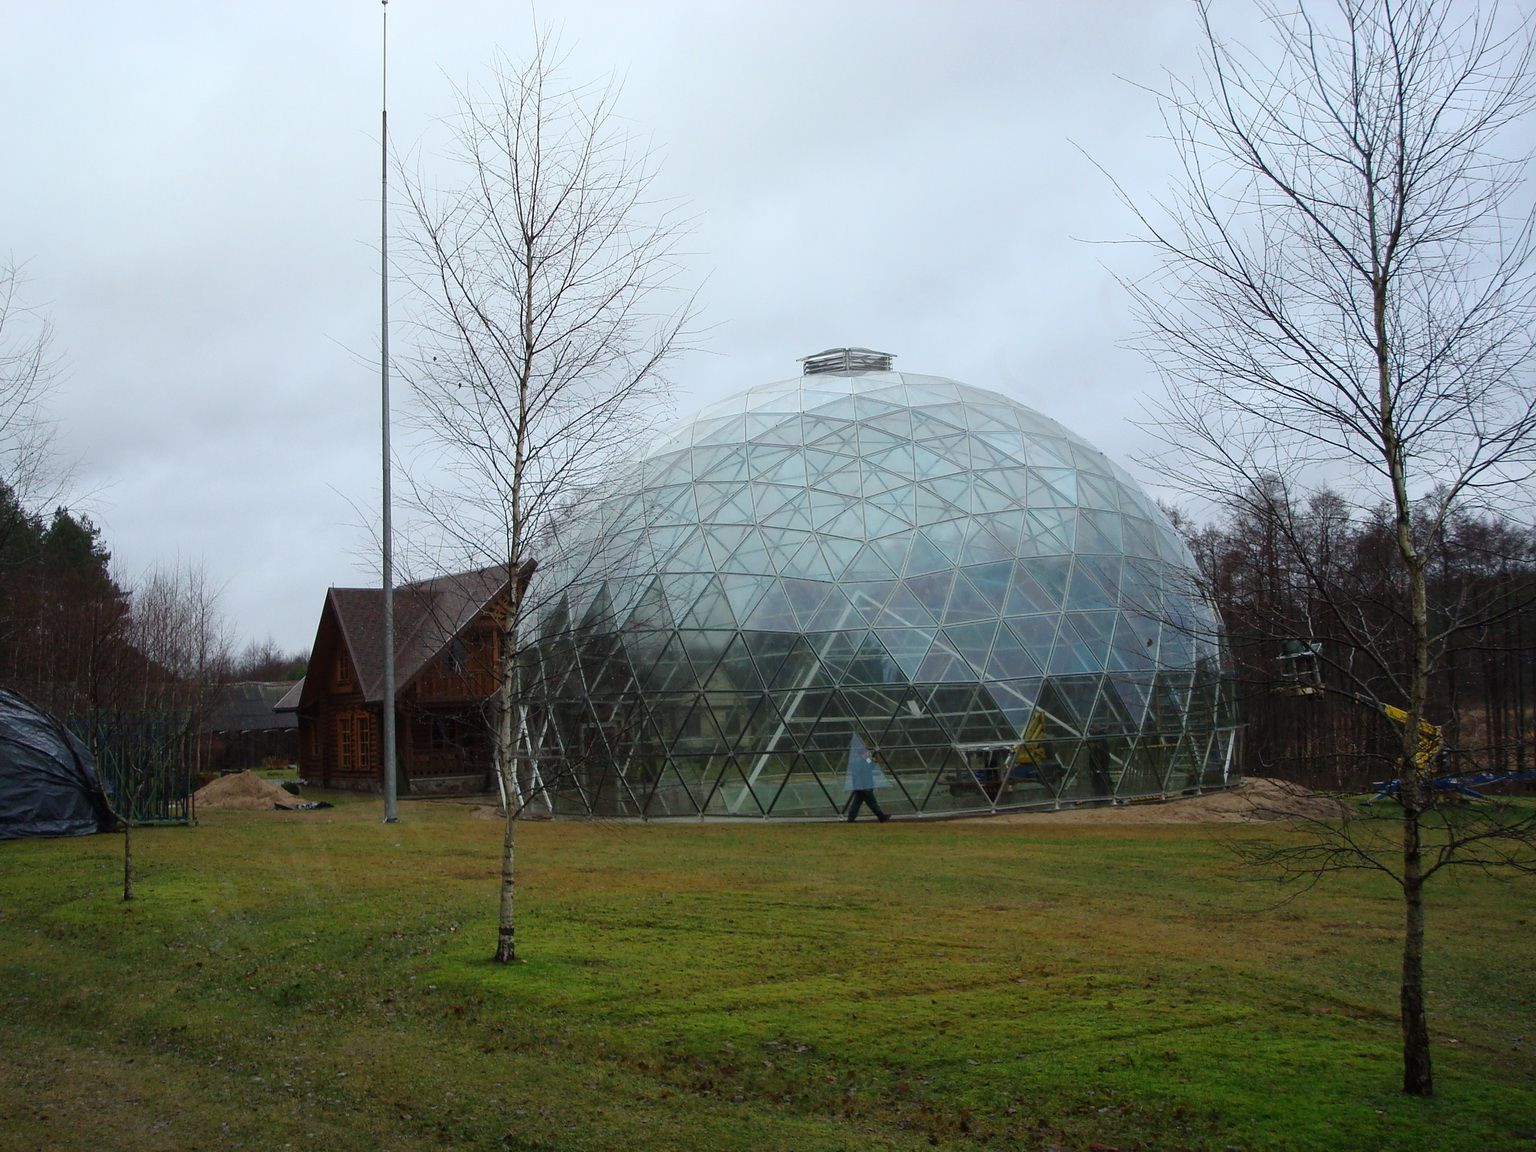 Pyramid of Merkinė @ Glass Geodesic Dome Ø23m, Merkine, Lithuania